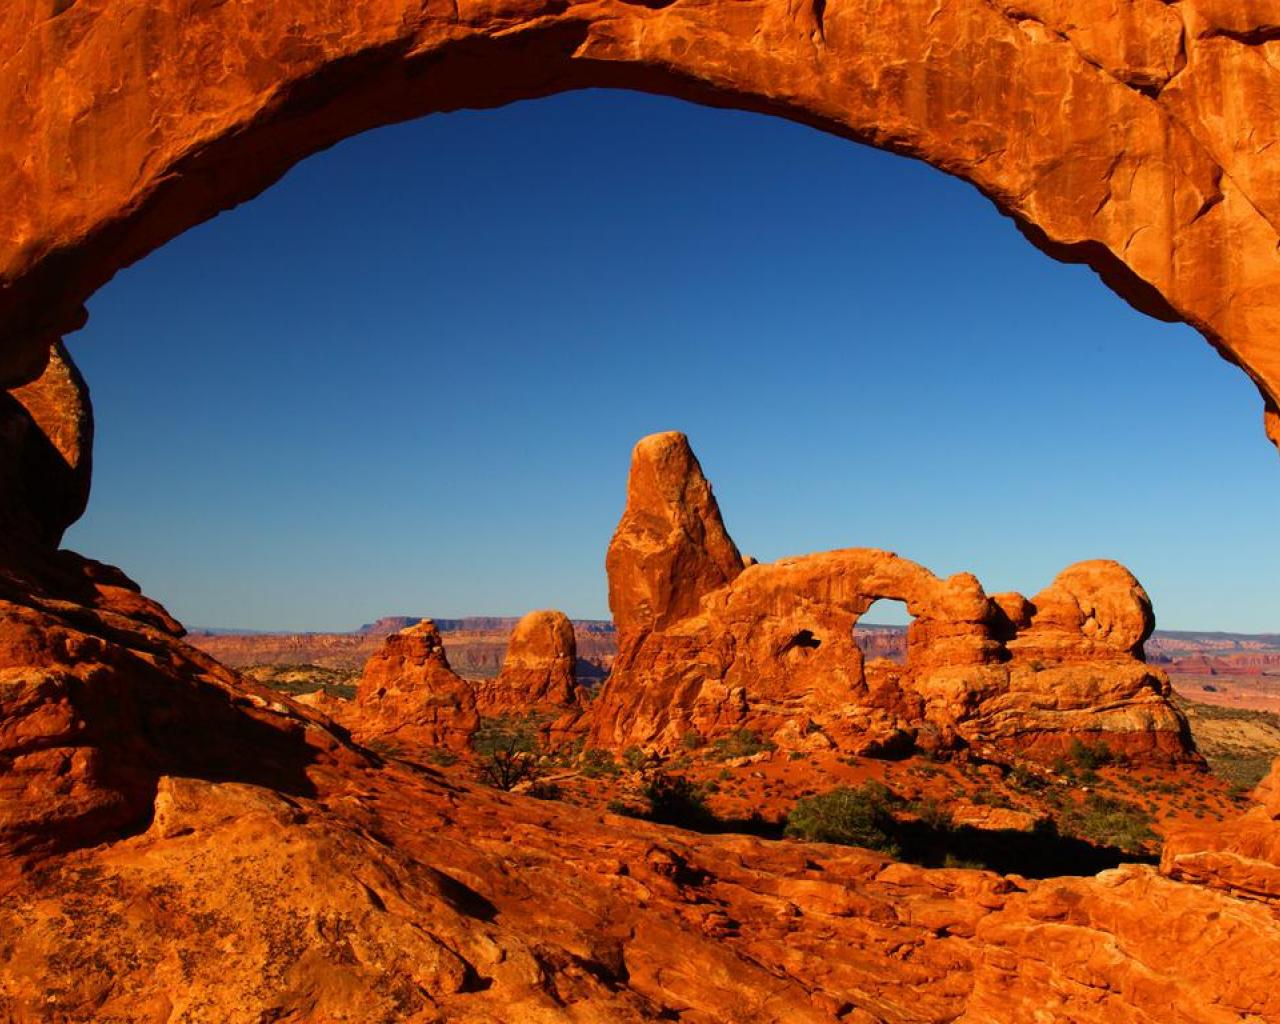 Arches national park usa HQ WALLPAPER   167335 1280x1024